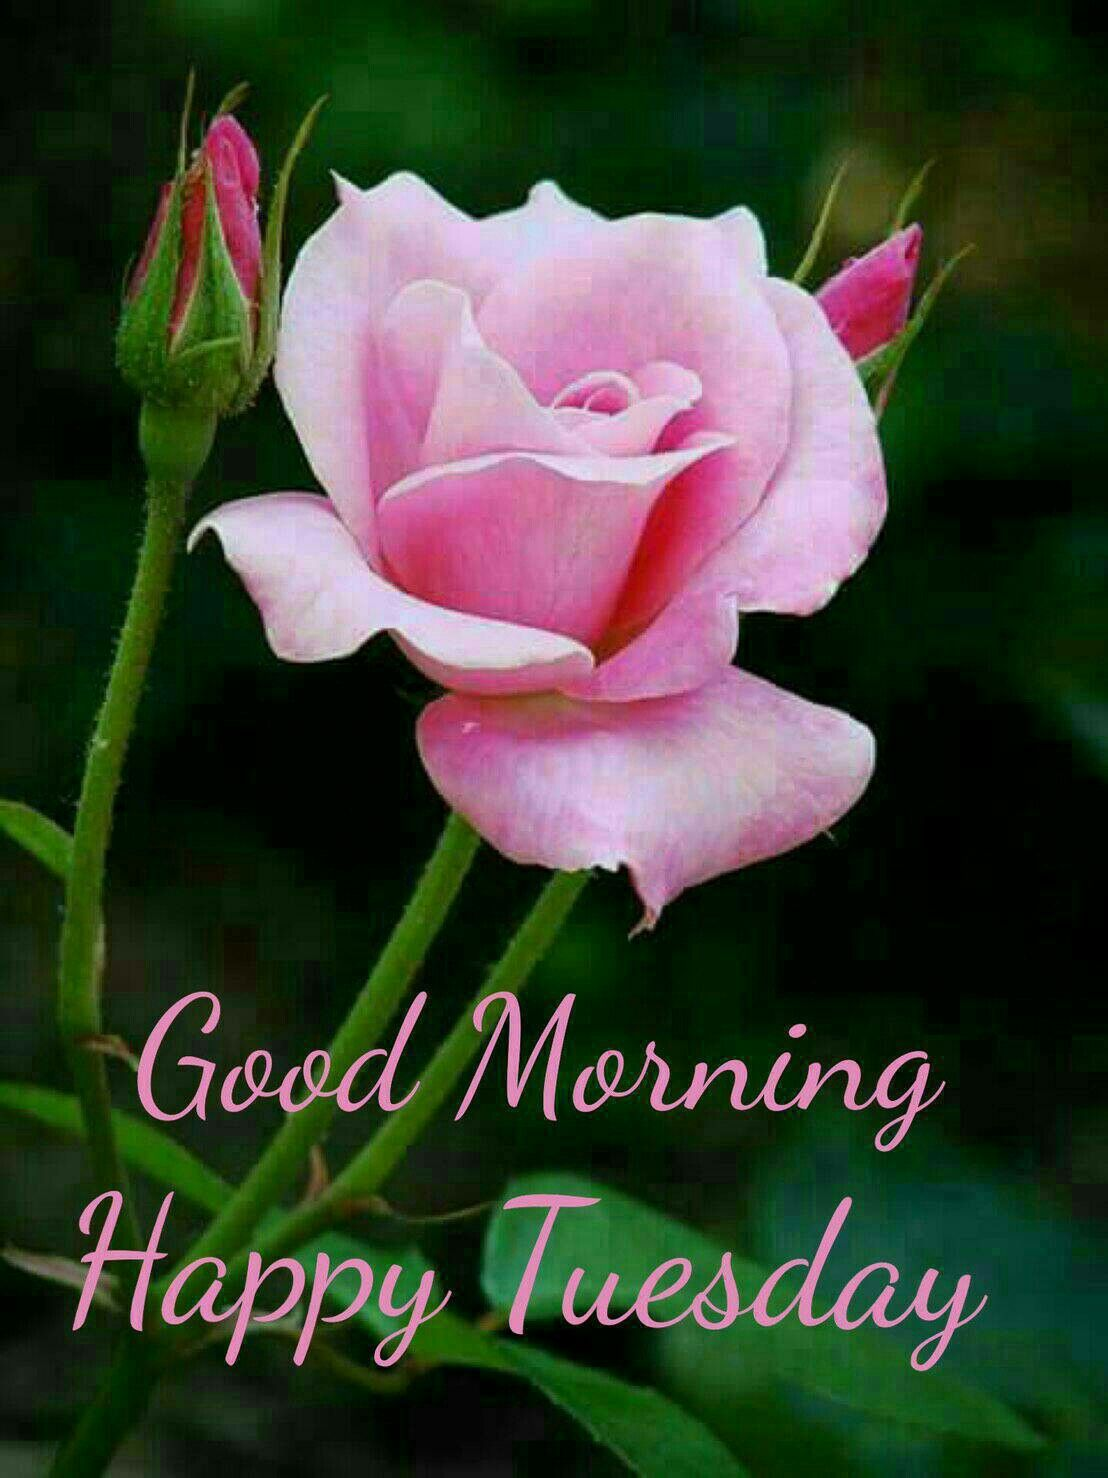 Tuesday blessings days of our livesgreetings pinterest tuesday blessings izmirmasajfo